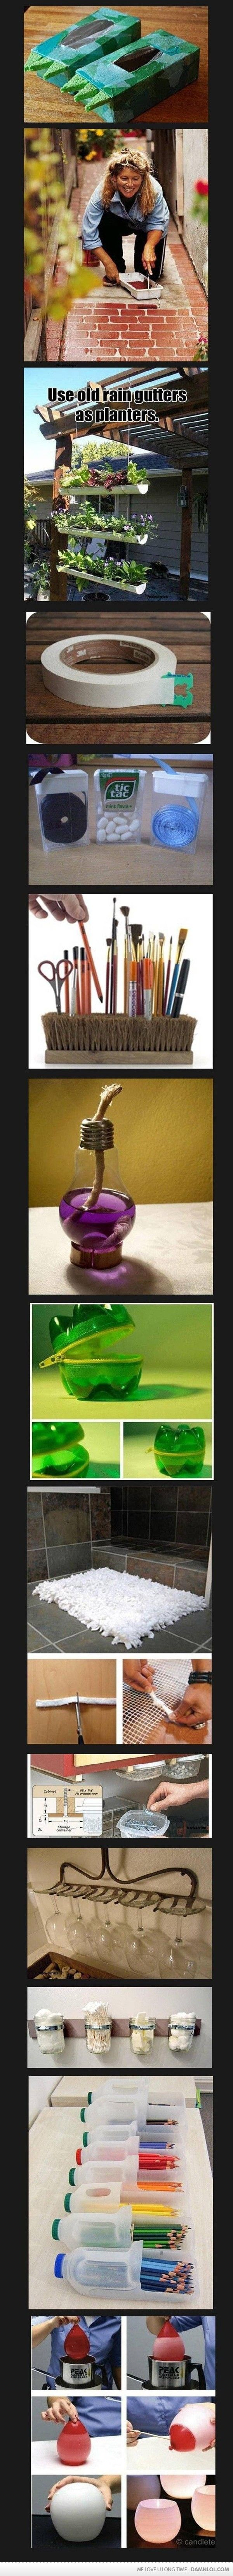 cool ideasReuse Recycle, Good Ideas, Crafts Ideas, Households Items, Cool Ideas, Wine Glasses, Life Hacks, Diy, Pencil Holders